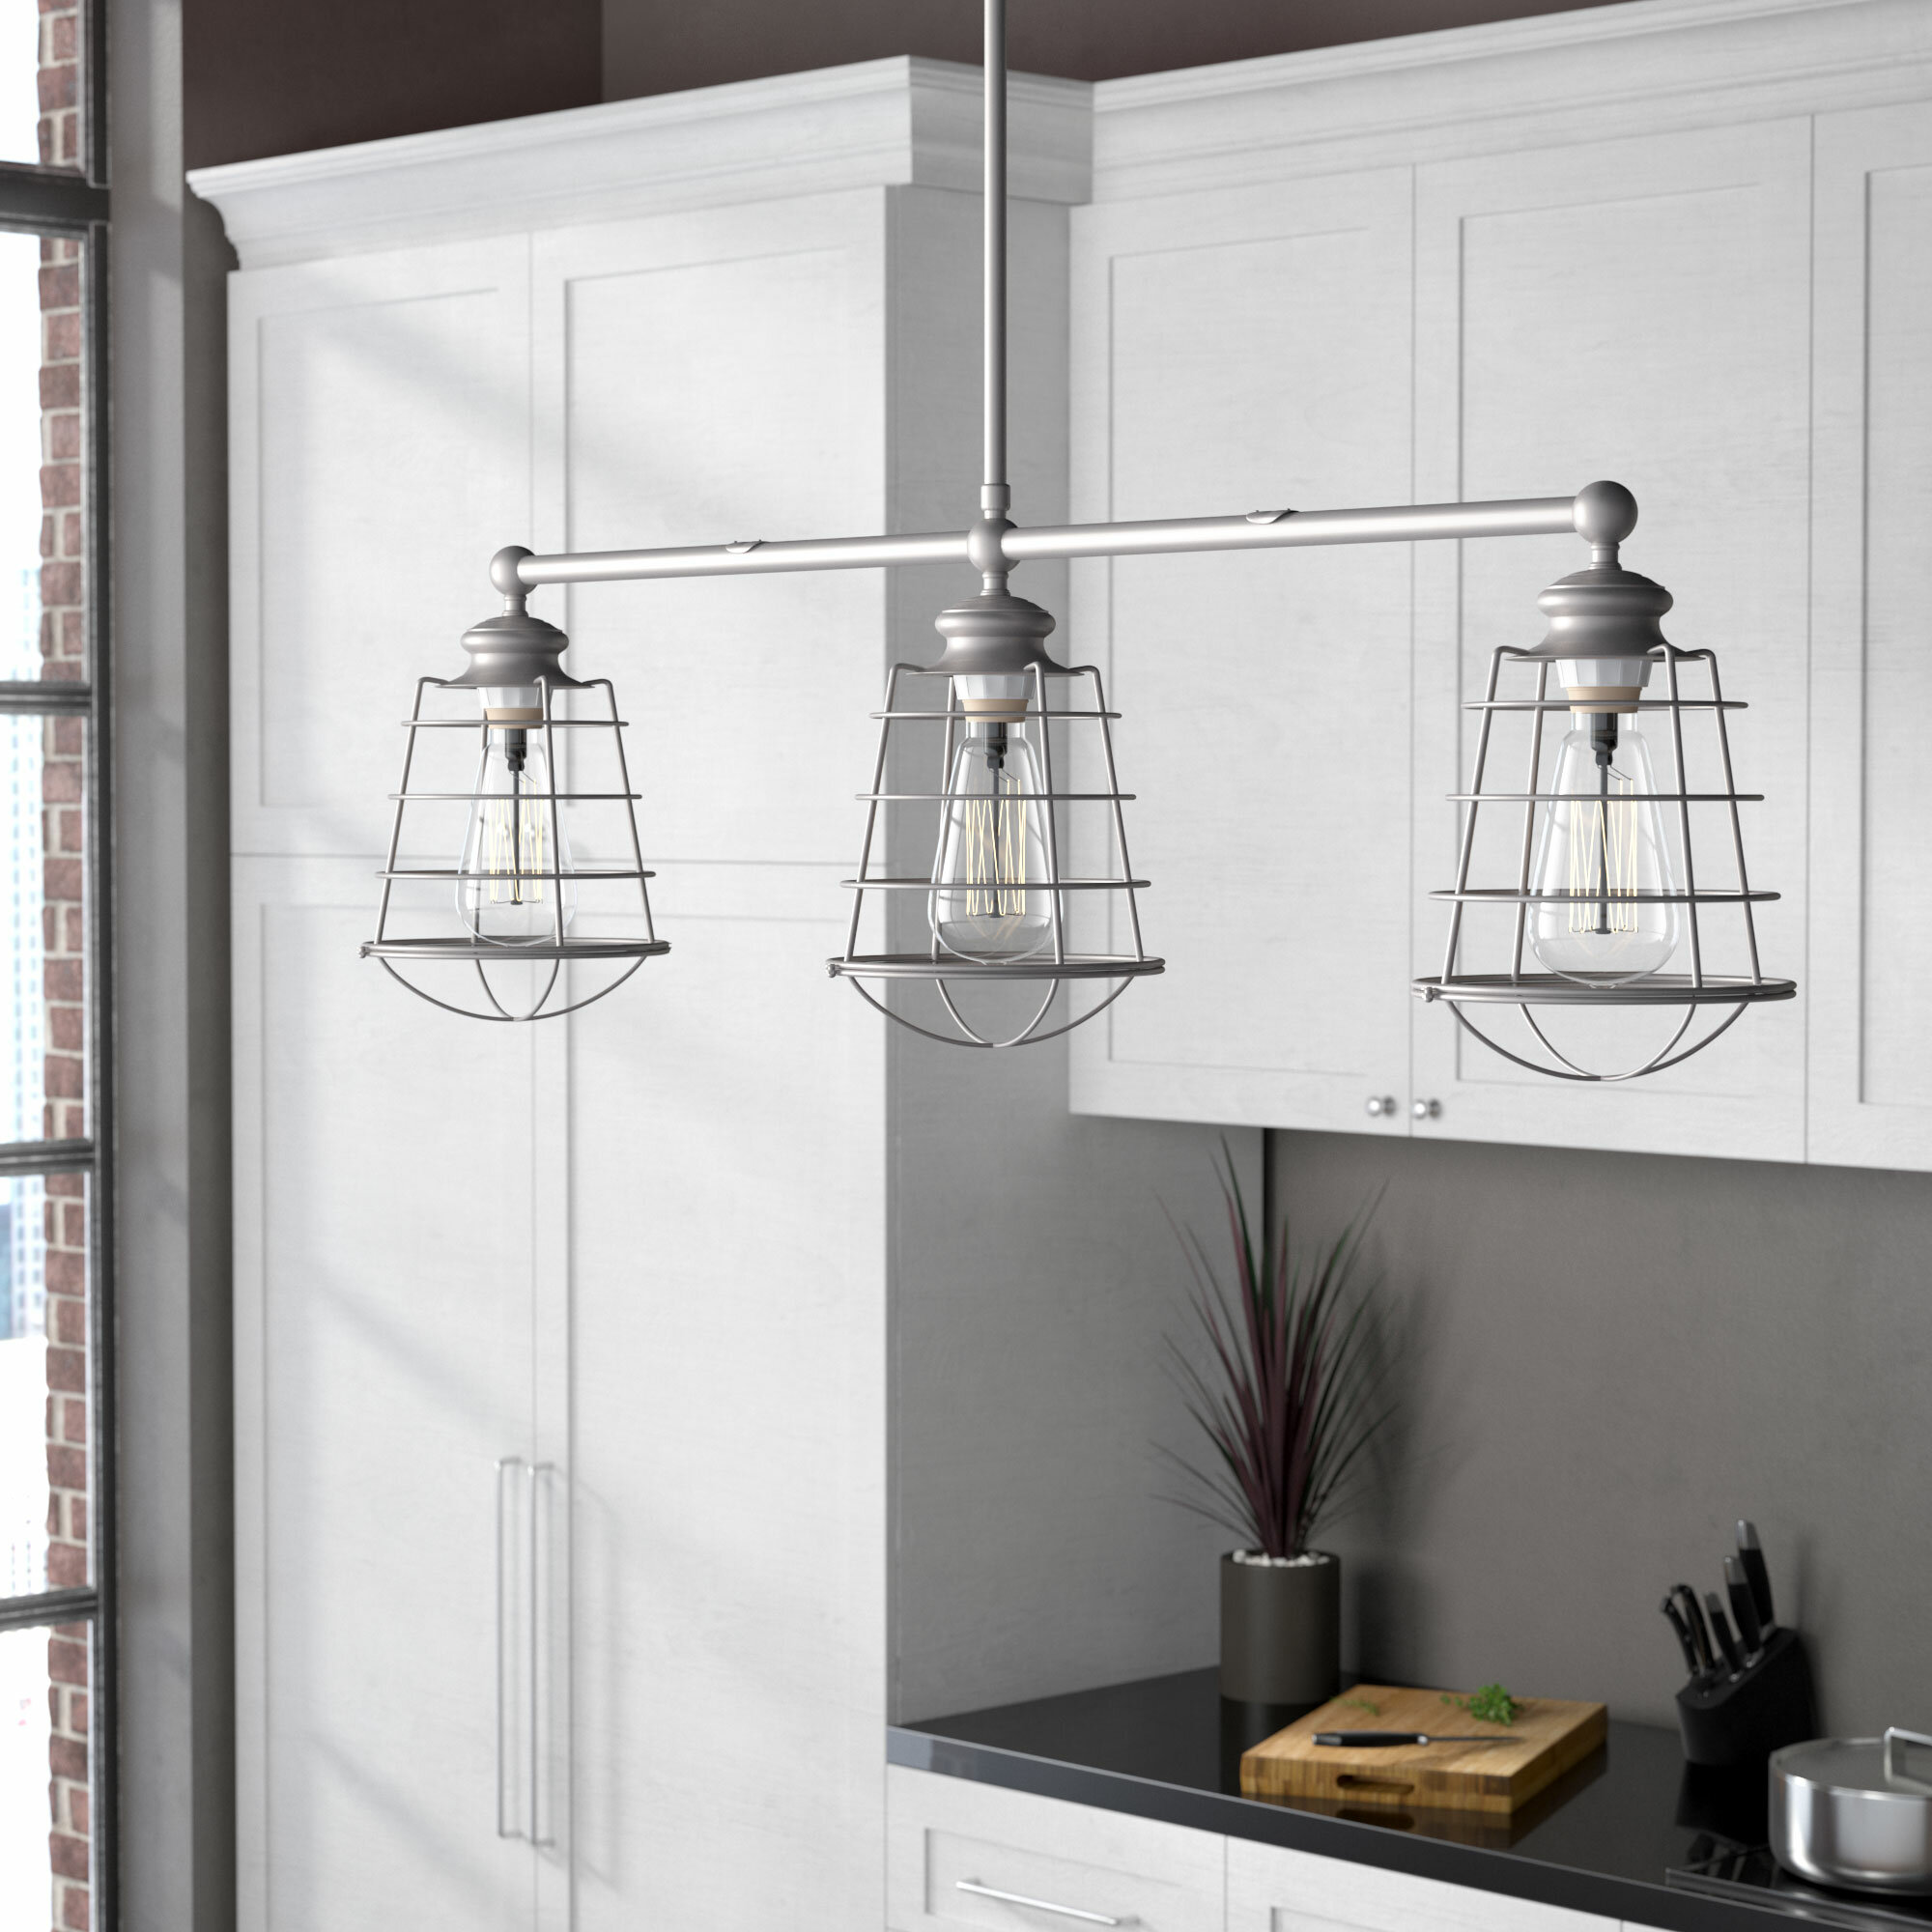 Leda 3 light kitchen island pendant